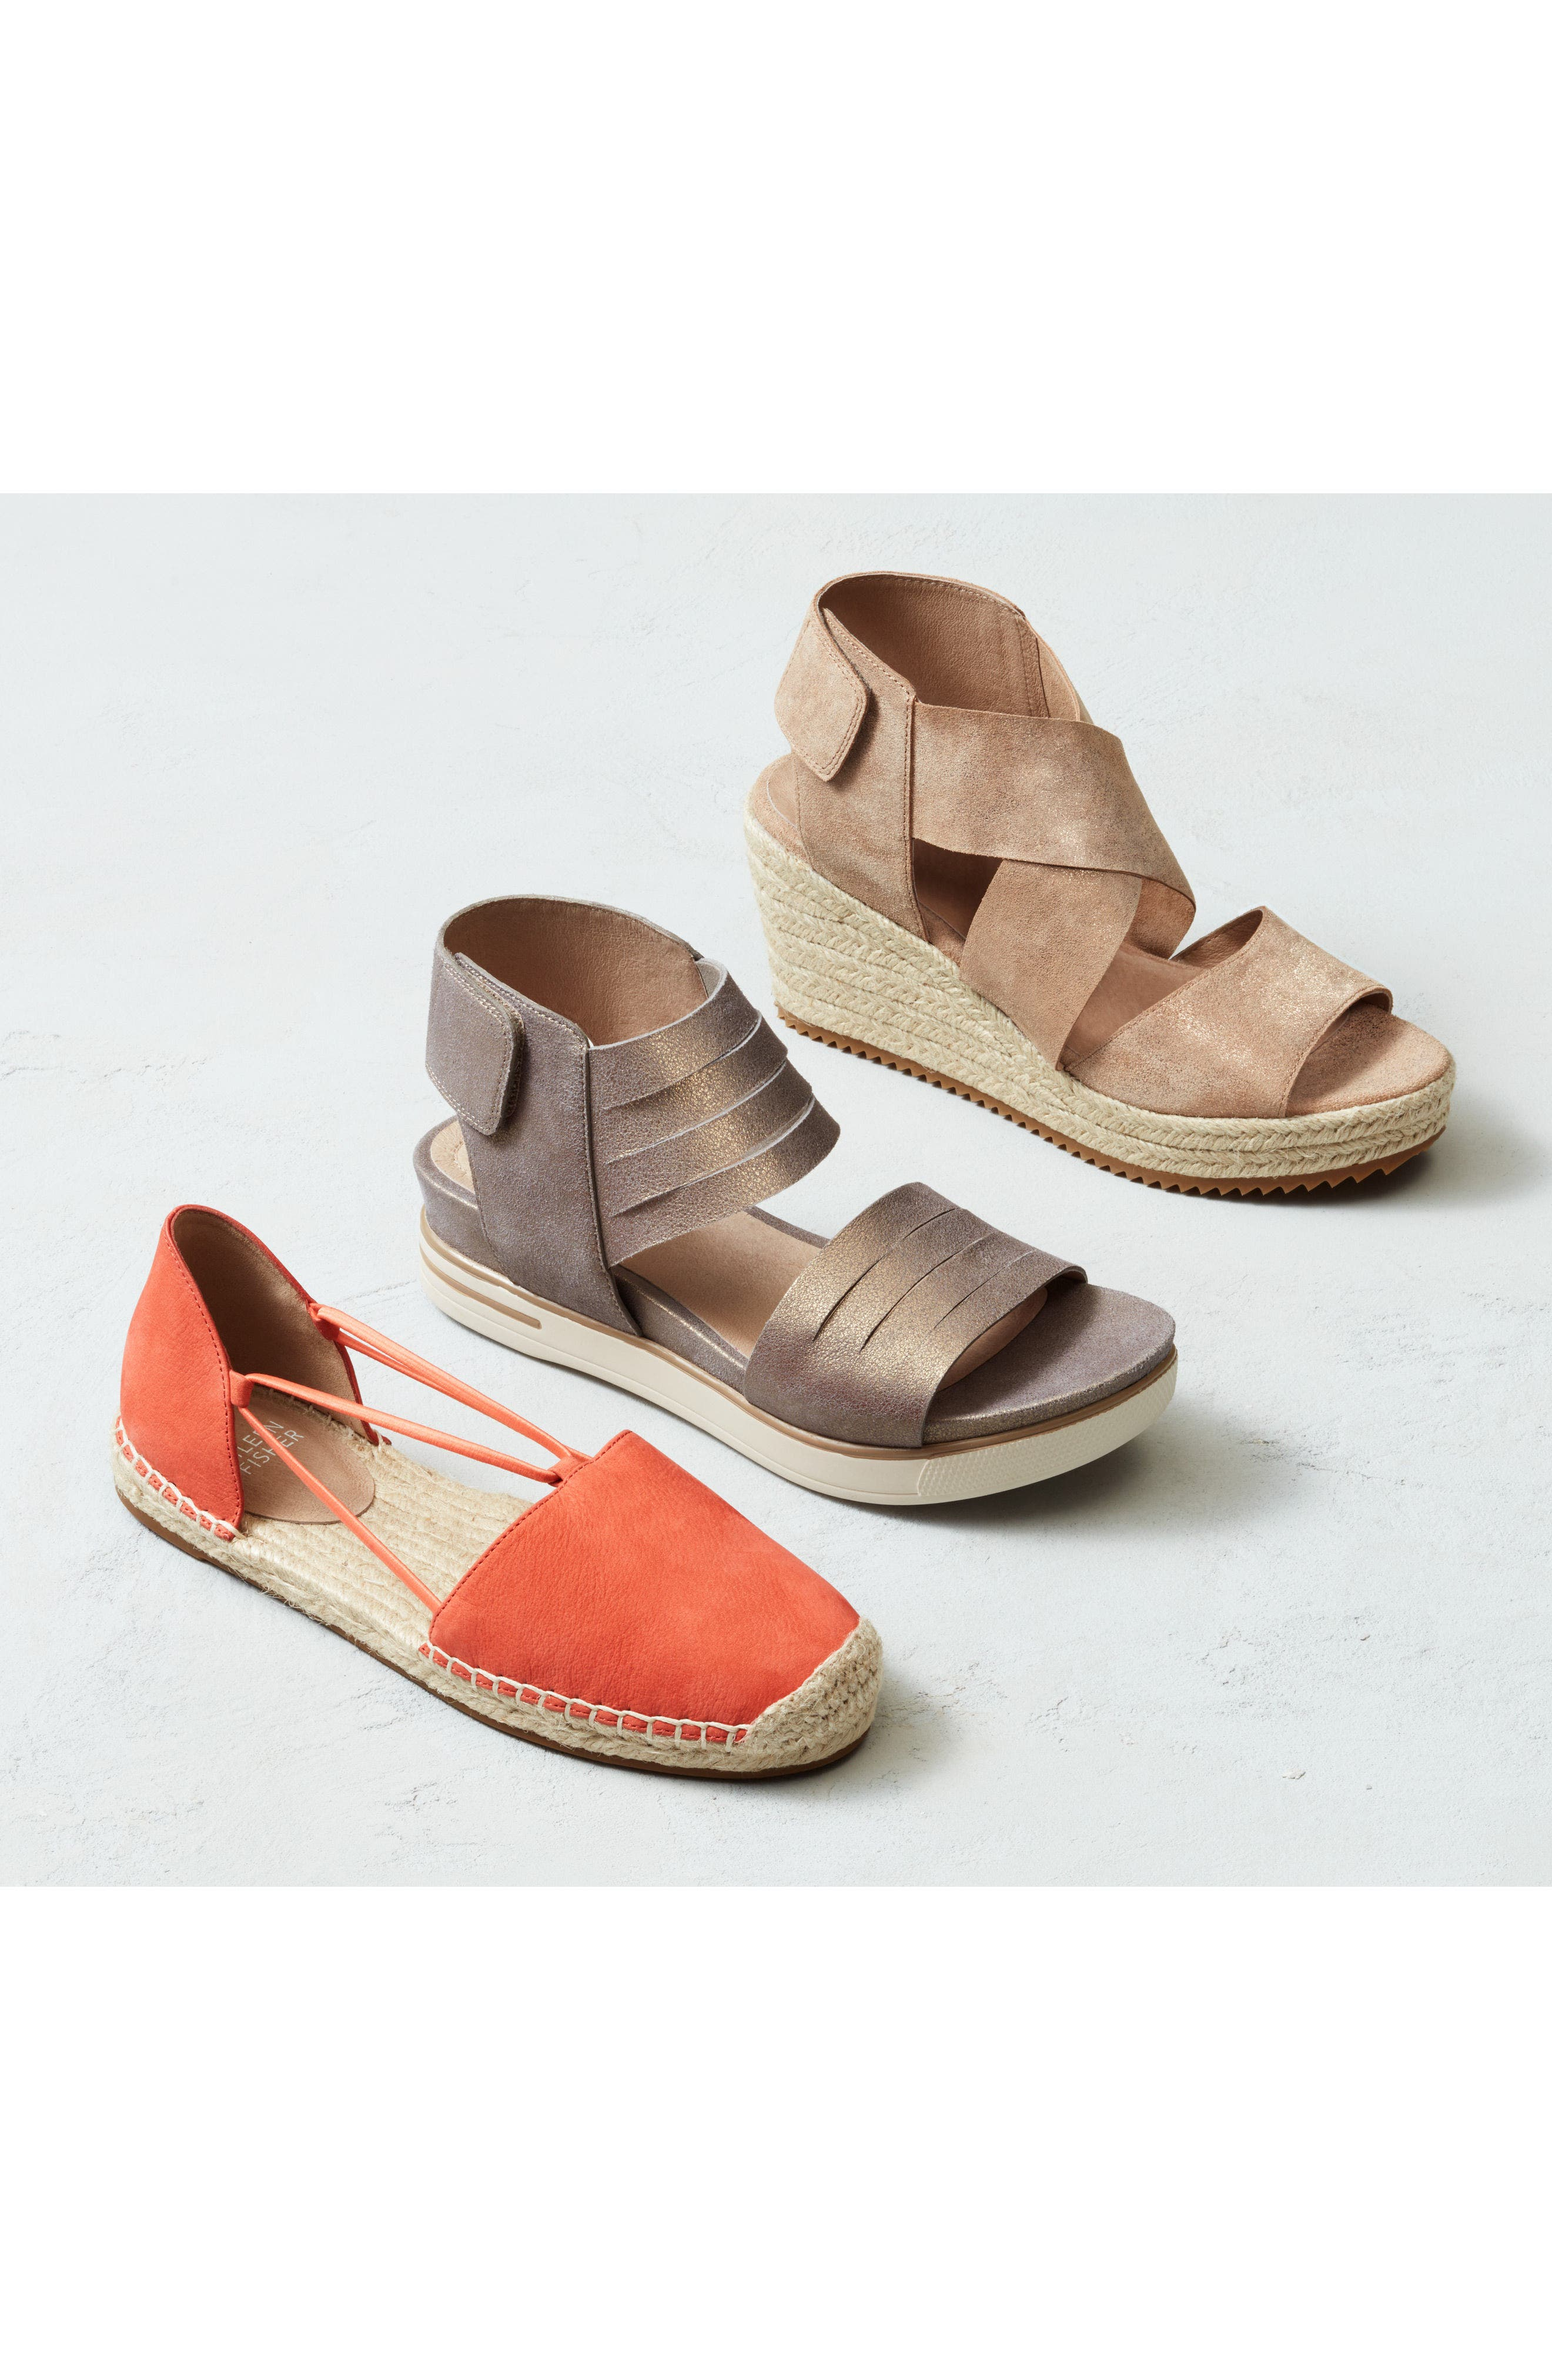 'Willow' Espadrille Wedge Sandal,                             Alternate thumbnail 9, color,                             TOFFEE CREAM NUBUCK